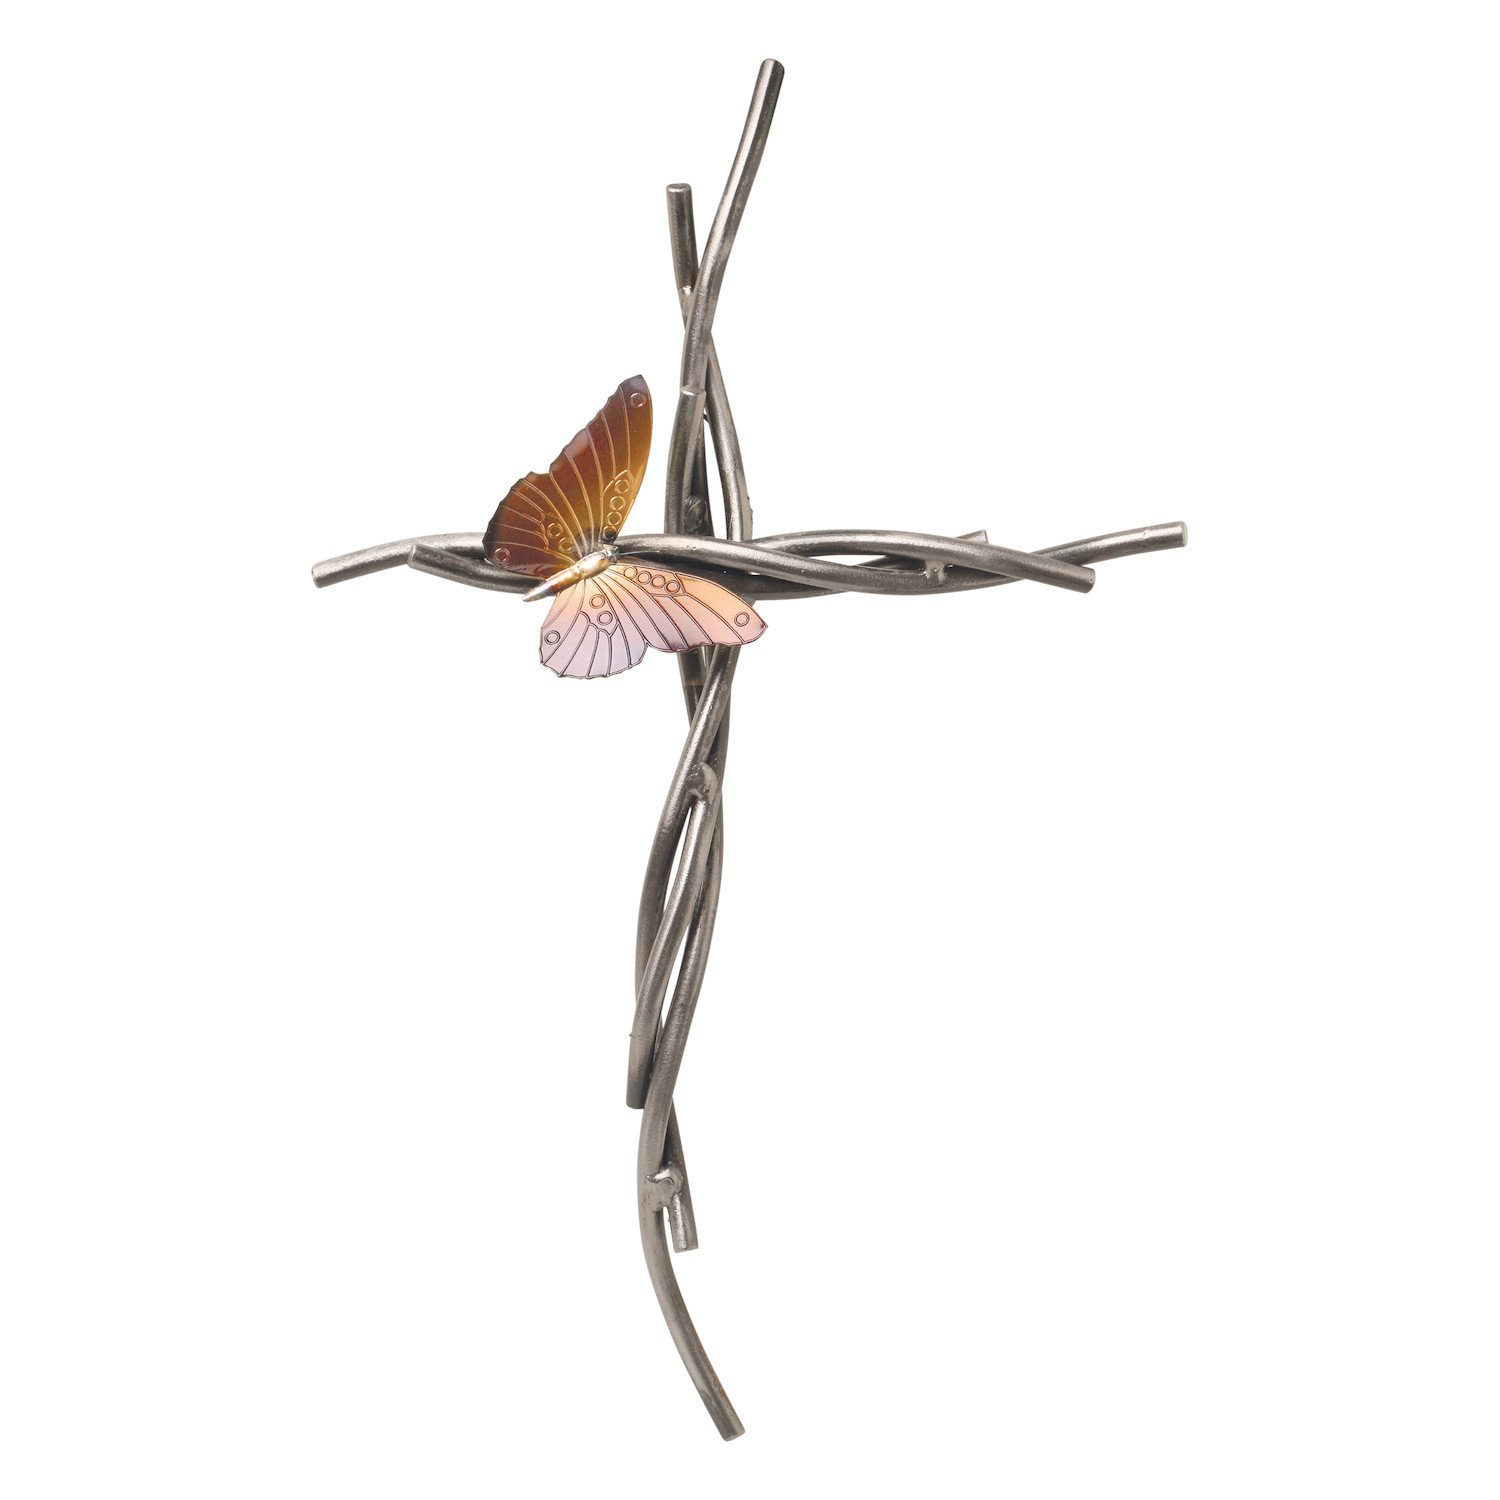 Iron Chinchilla Patrick Neuwirth Butterfly and Vine Wall Cross - Handmade Christian Home Decor